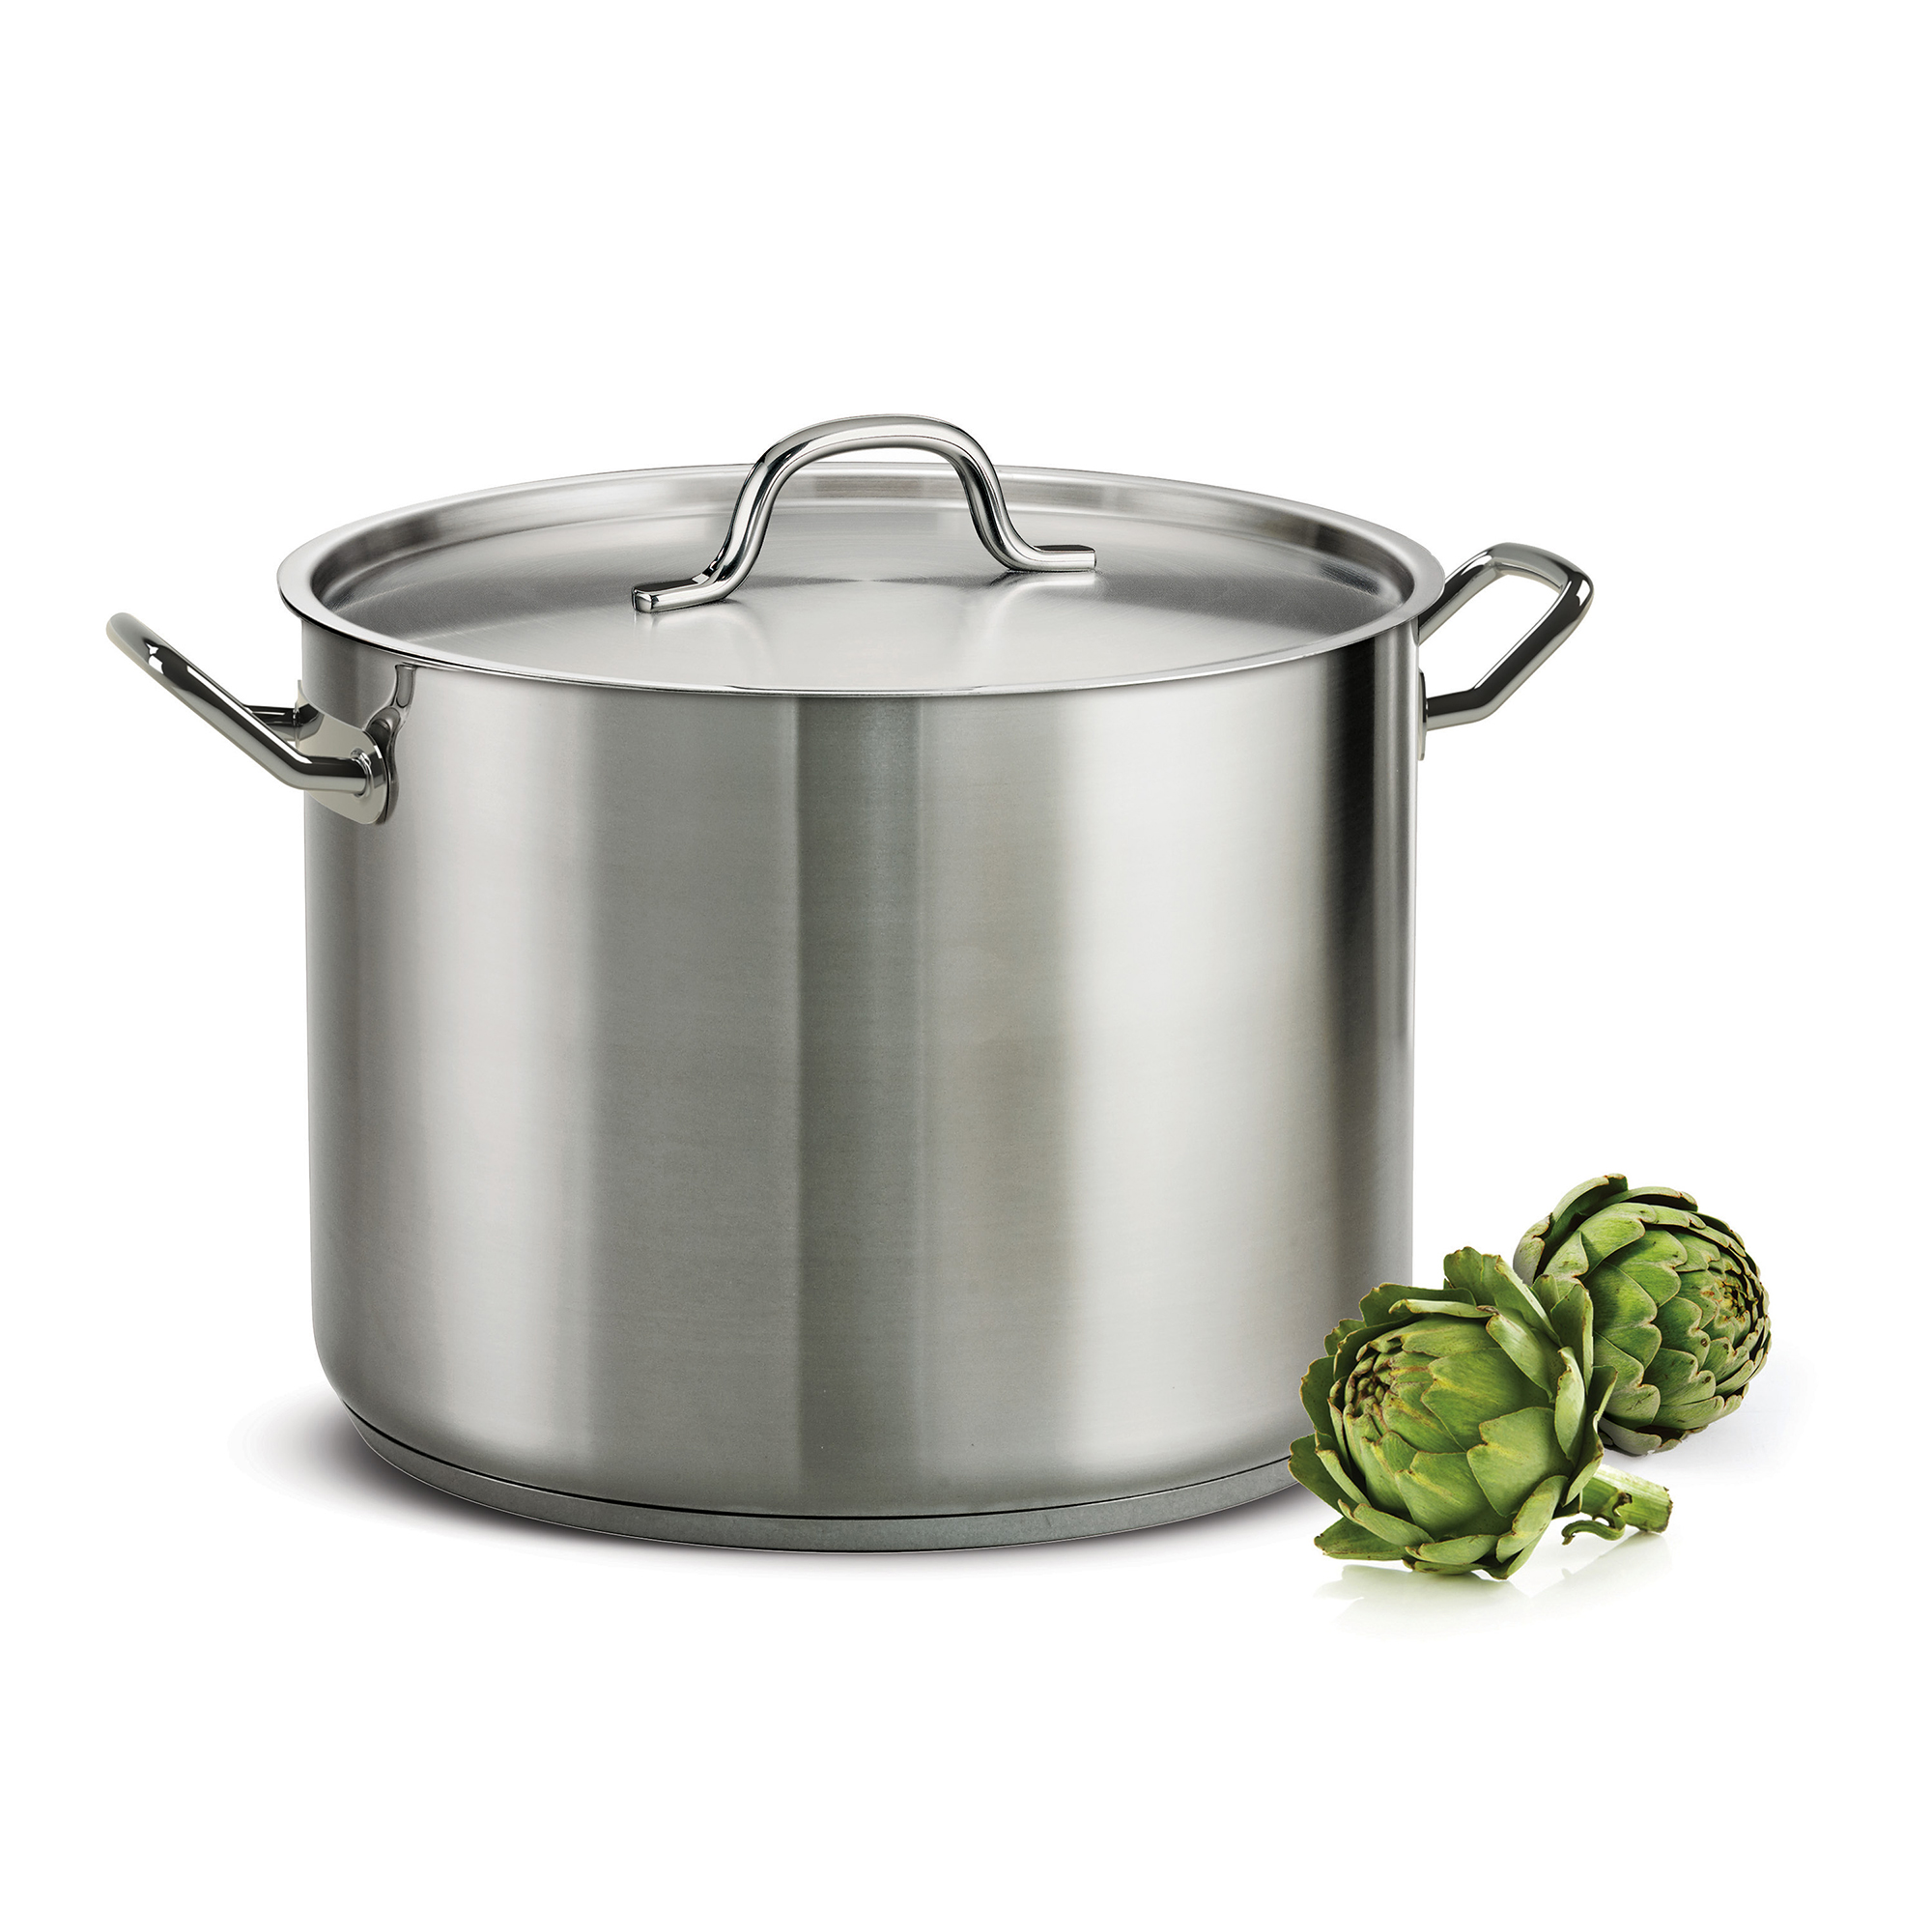 Tramontina Proline 16 Quart Stainless Steel Covered Stock